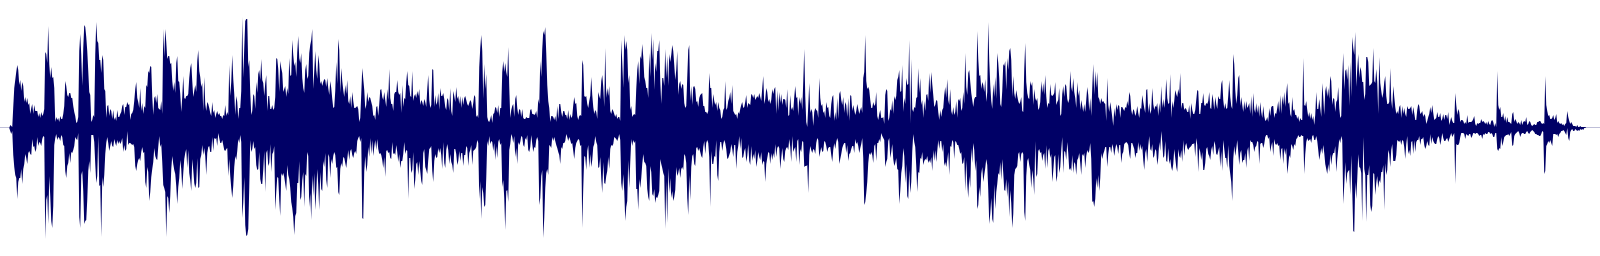 waveform of track #128686